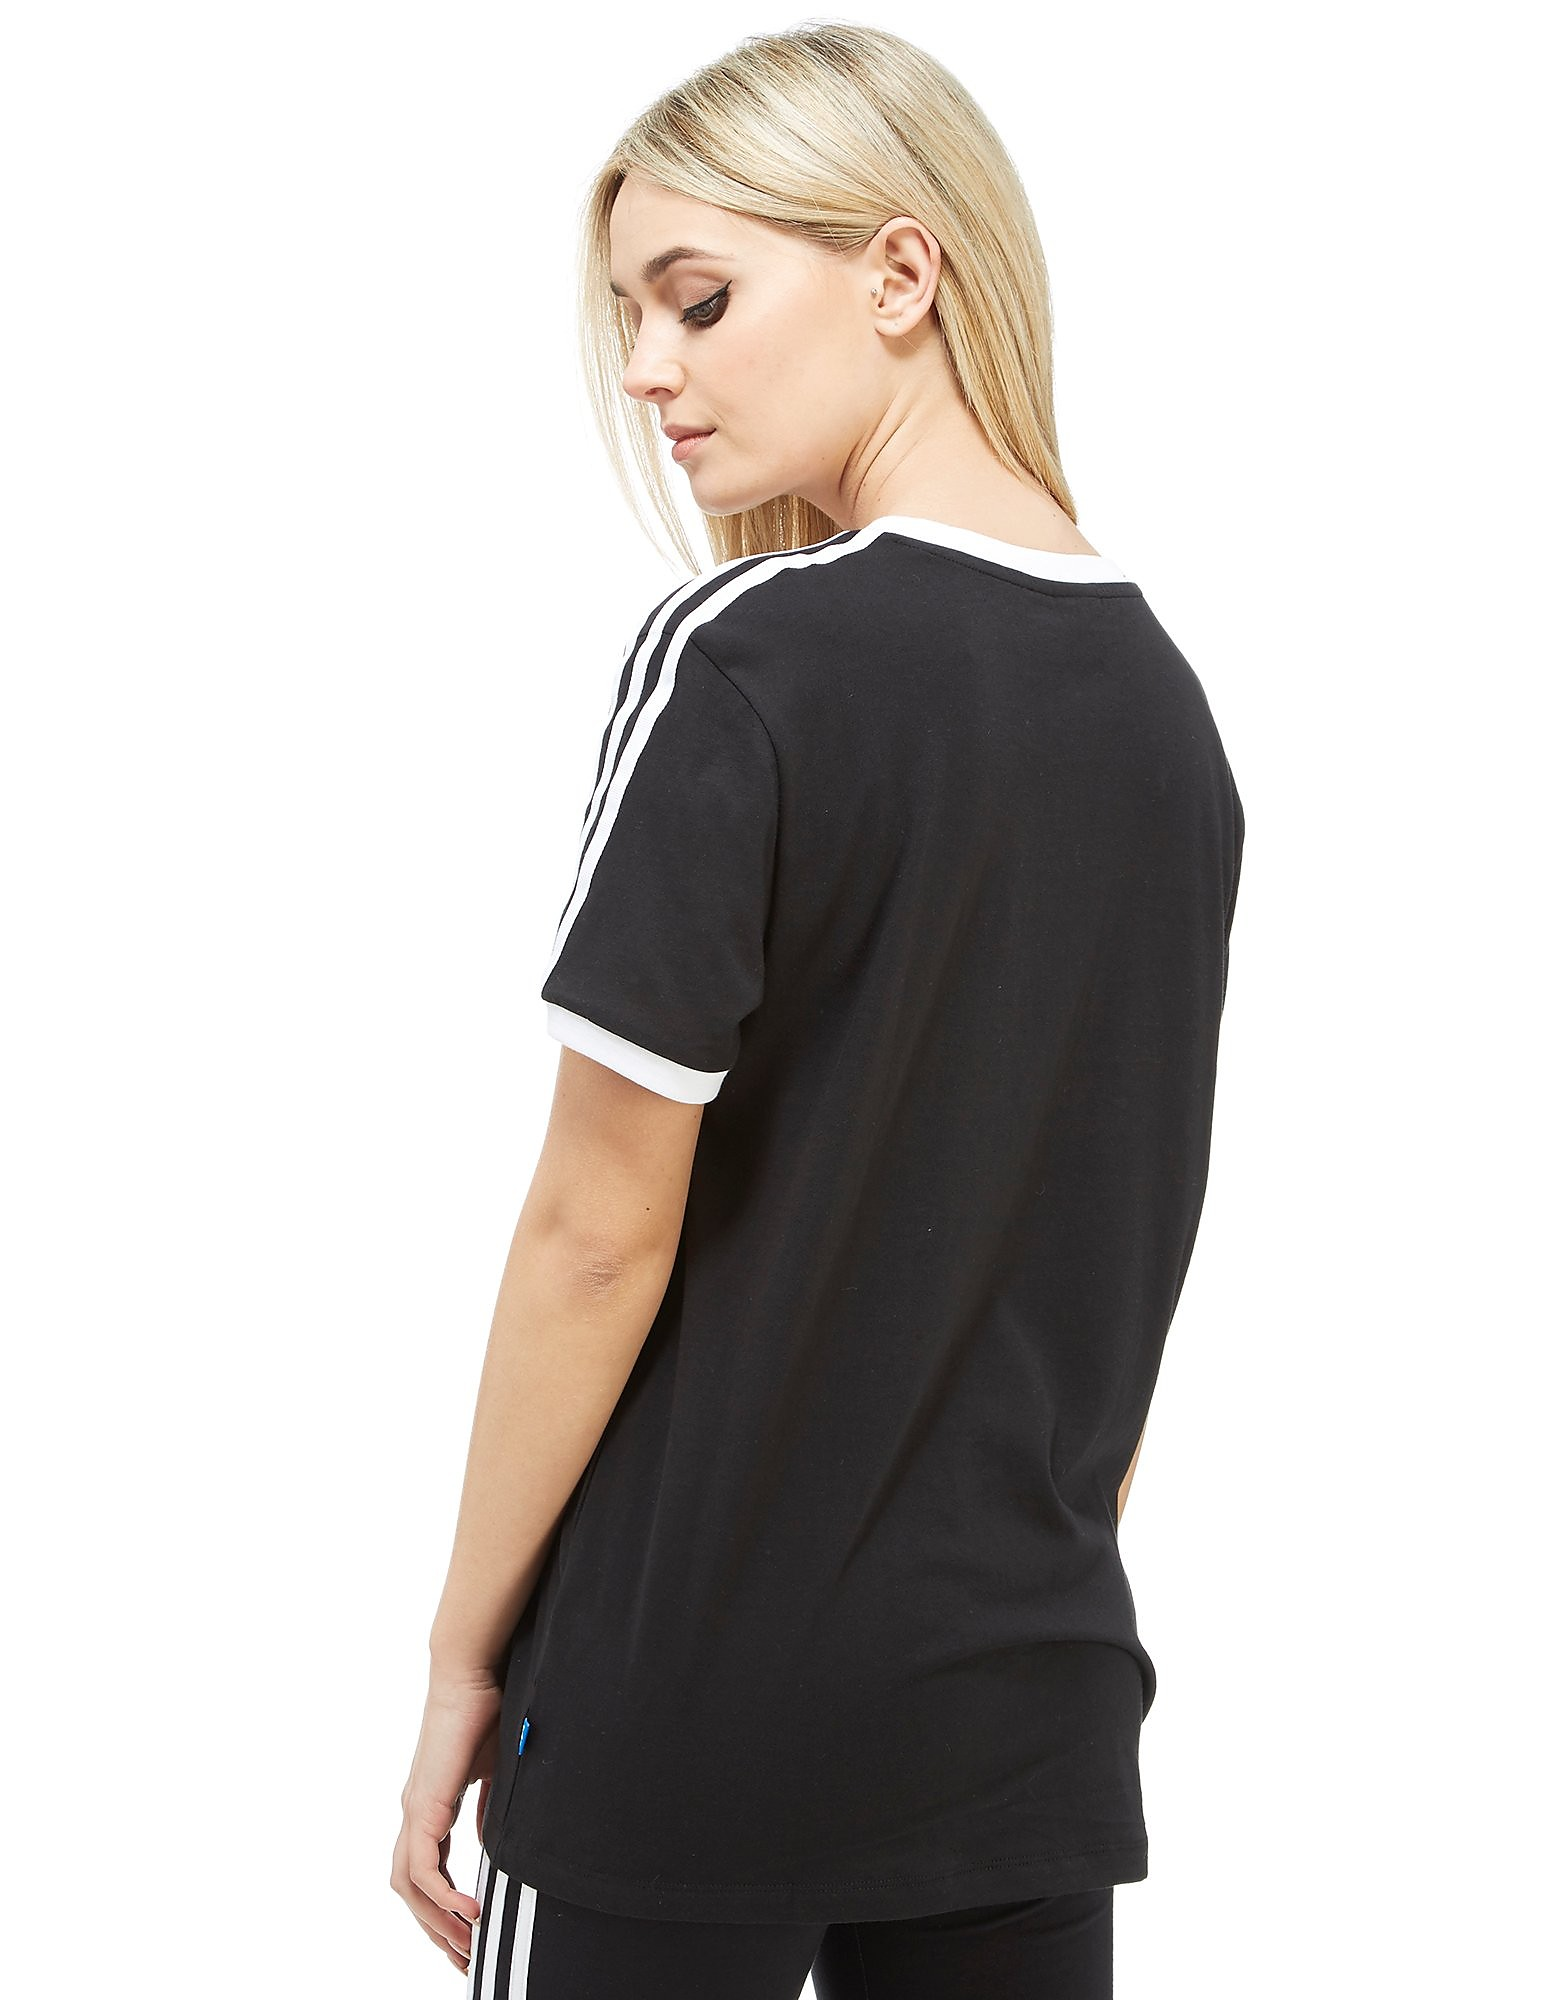 adidas Originals California T-Shirt für Damen